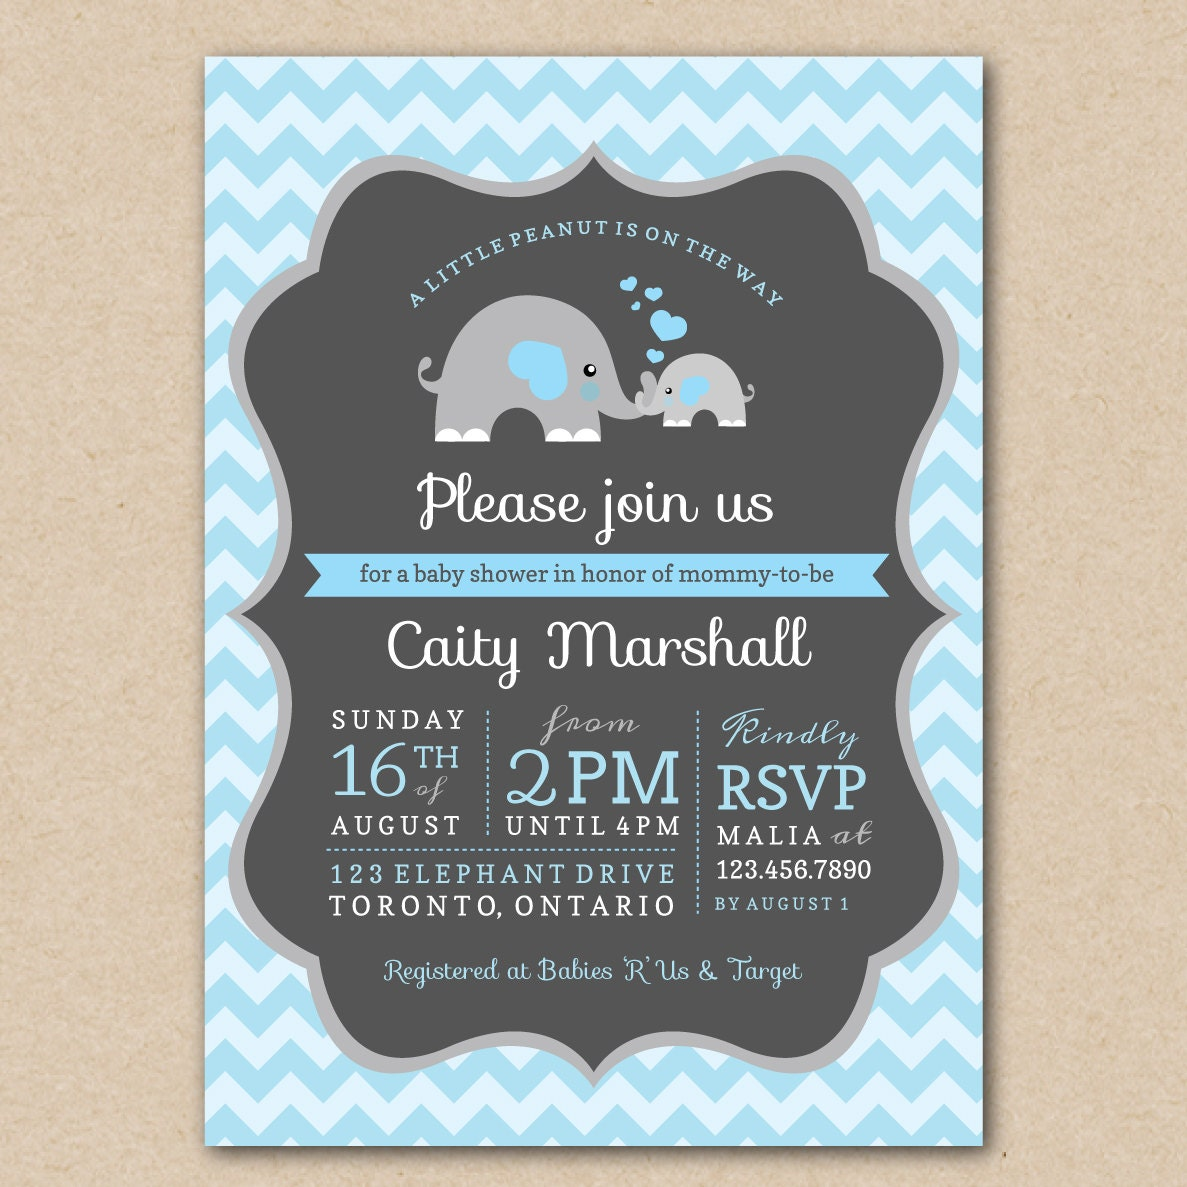 baby shower invitation a little peanut is by bellasboutiquedesign